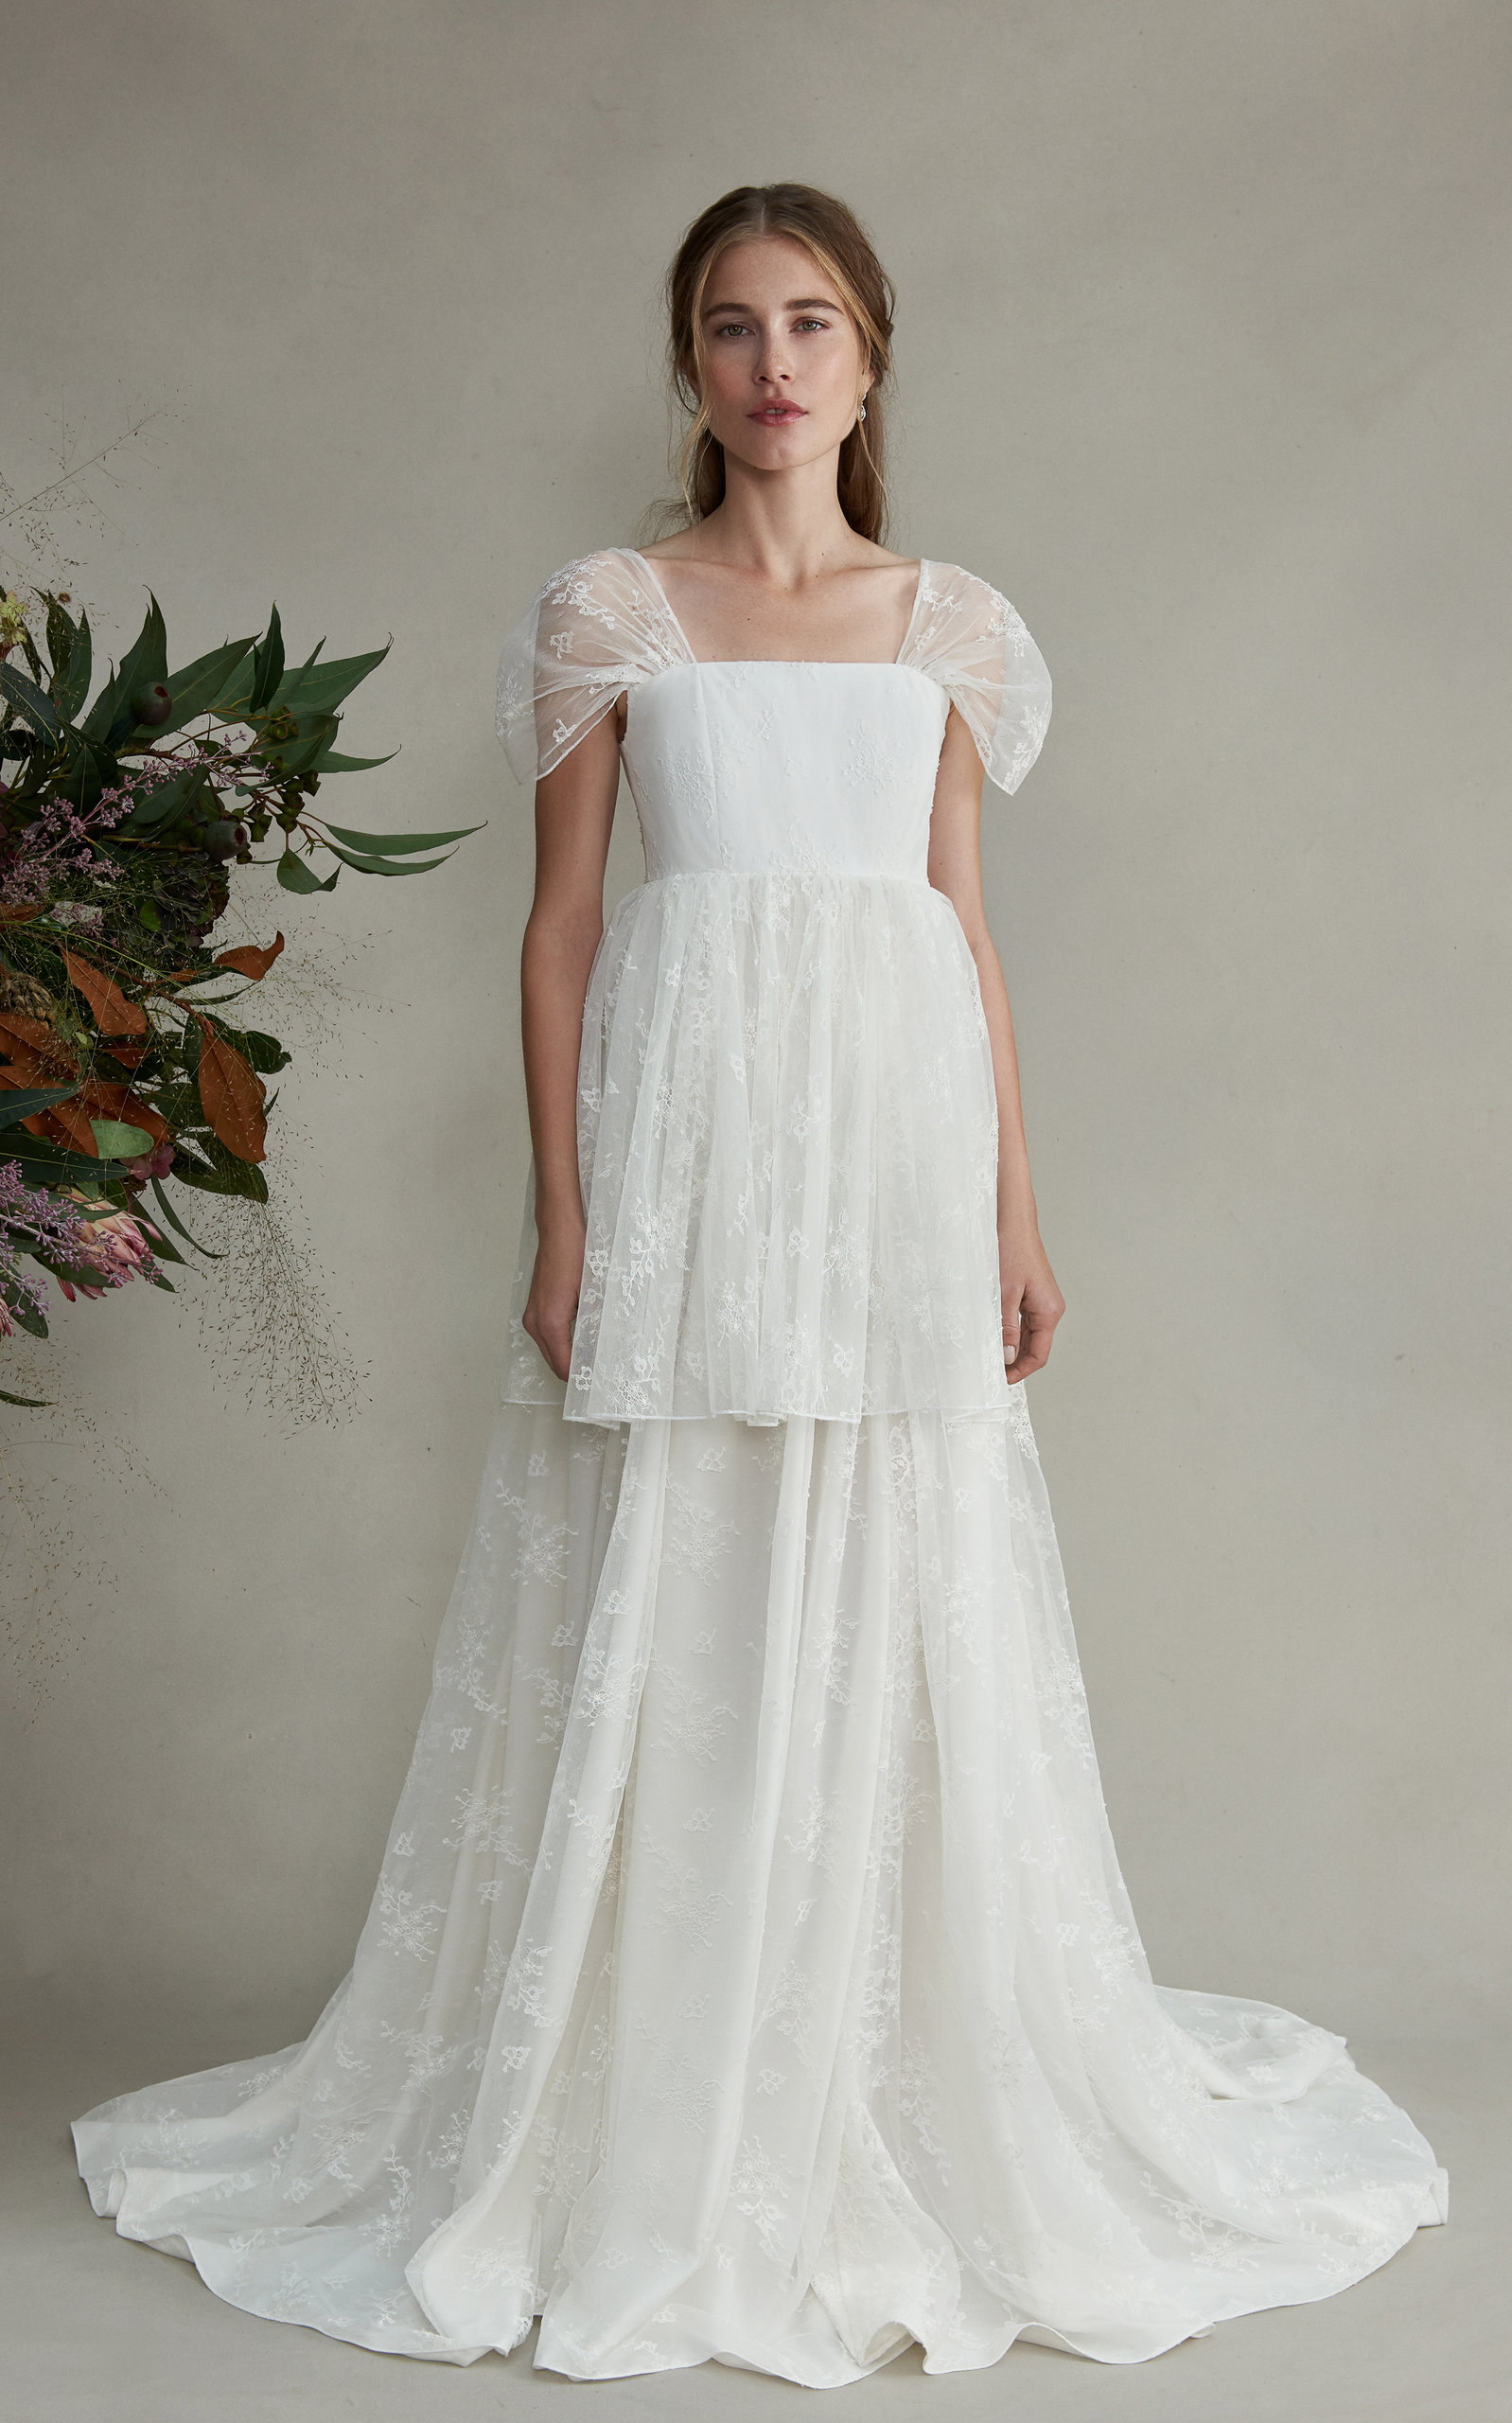 MARKARIAN Aurora Silk Tiered Dress With Draped Lace Sleeves in White